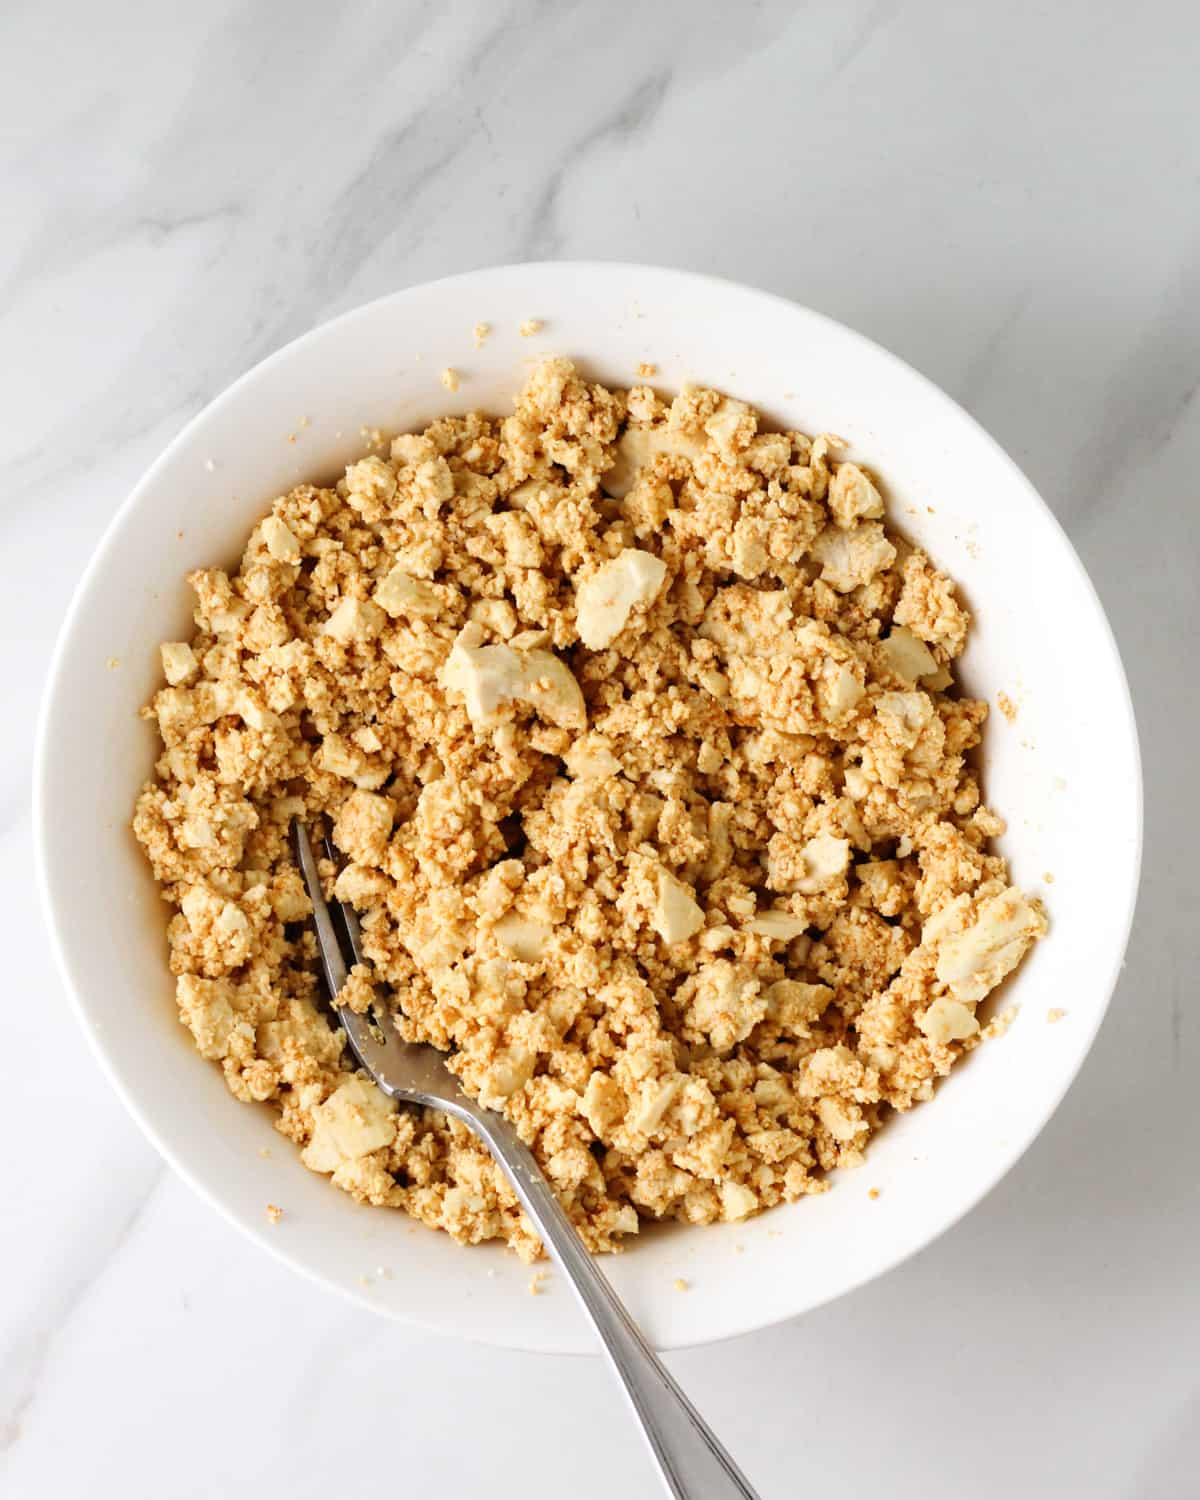 Seasoned crumbled tofu in a bowl with a fork